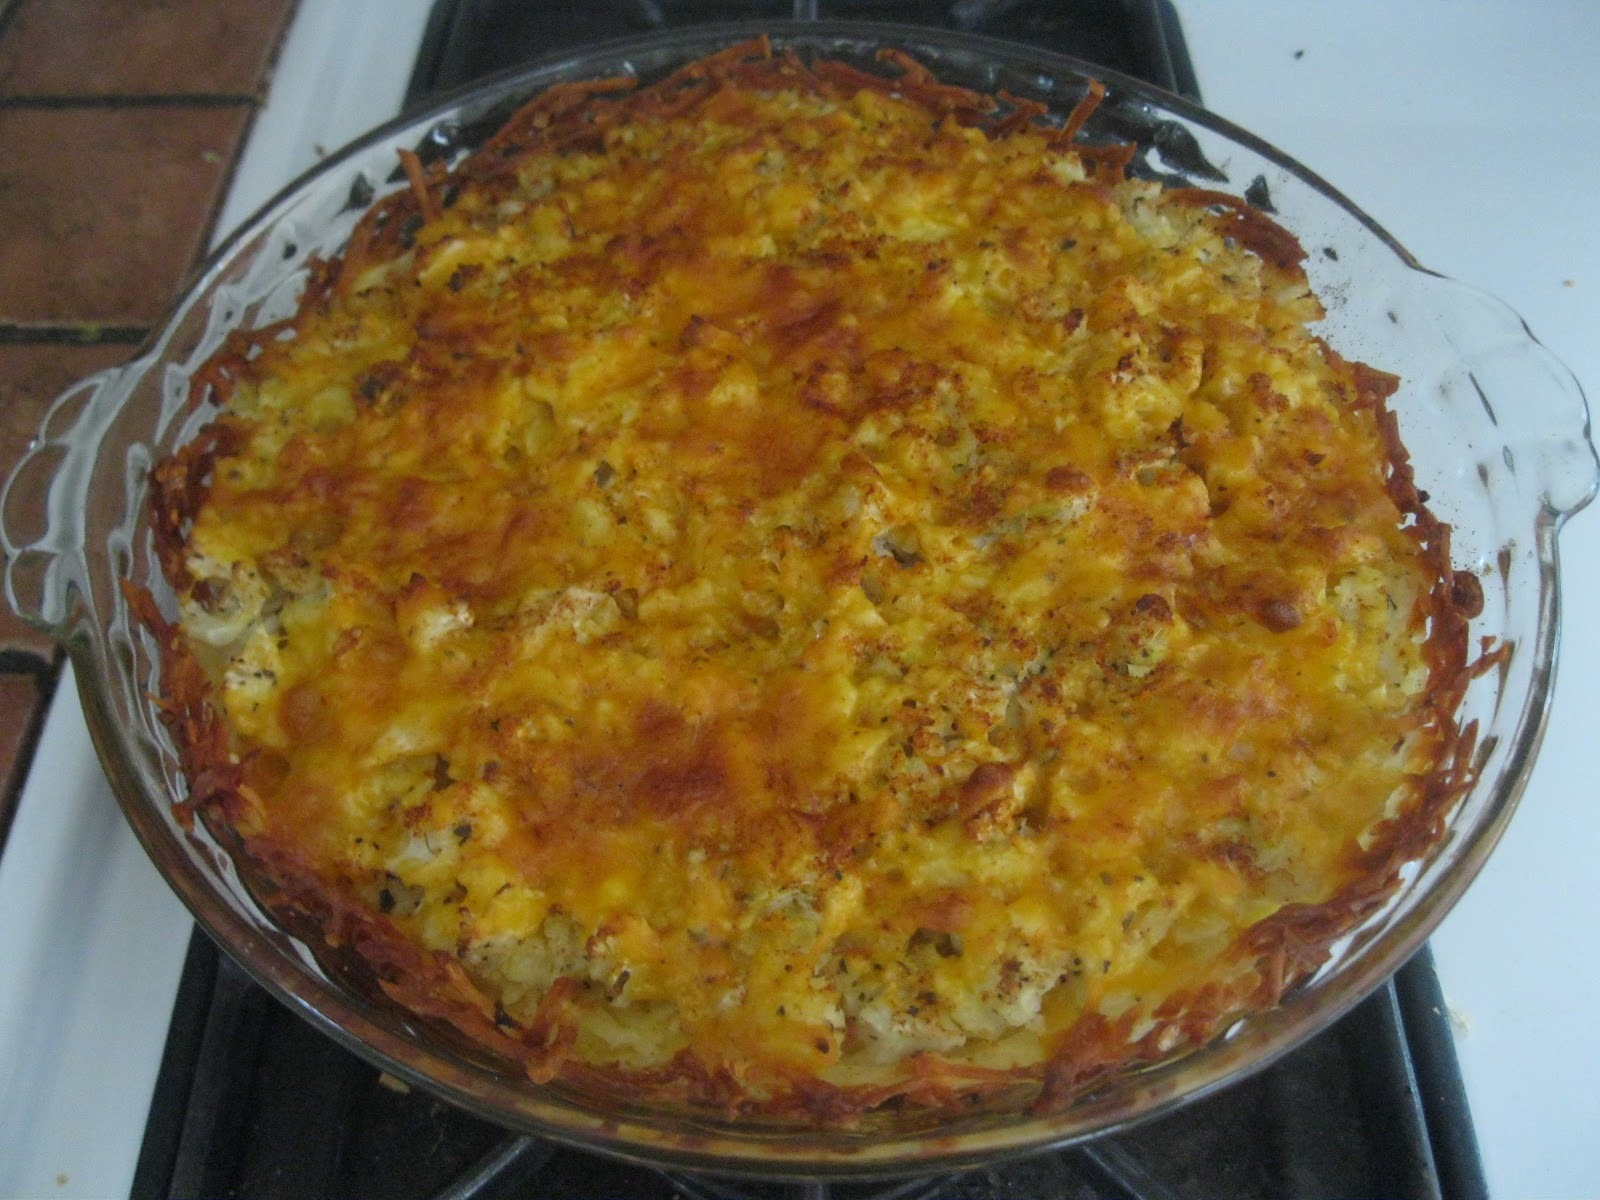 Aimee's Vegetarian Recipes: Cauliflower-Cheese Pie with Potato Crust